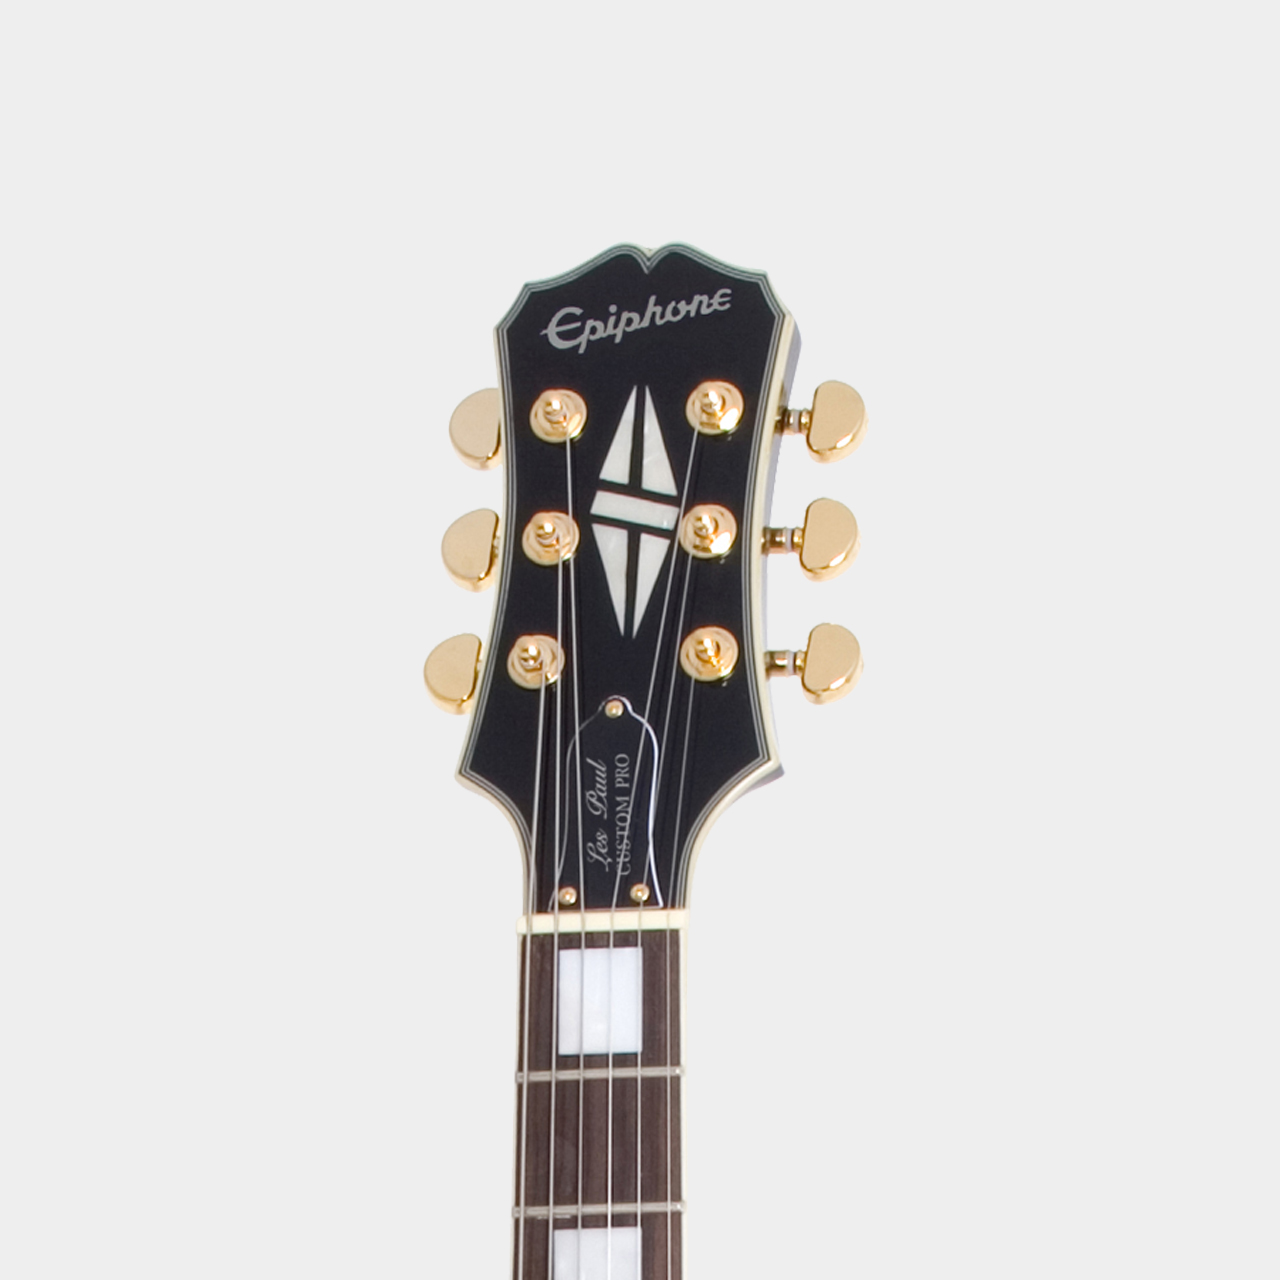 EPIPHONE Les Paul Custom PRO Ebony Headstock